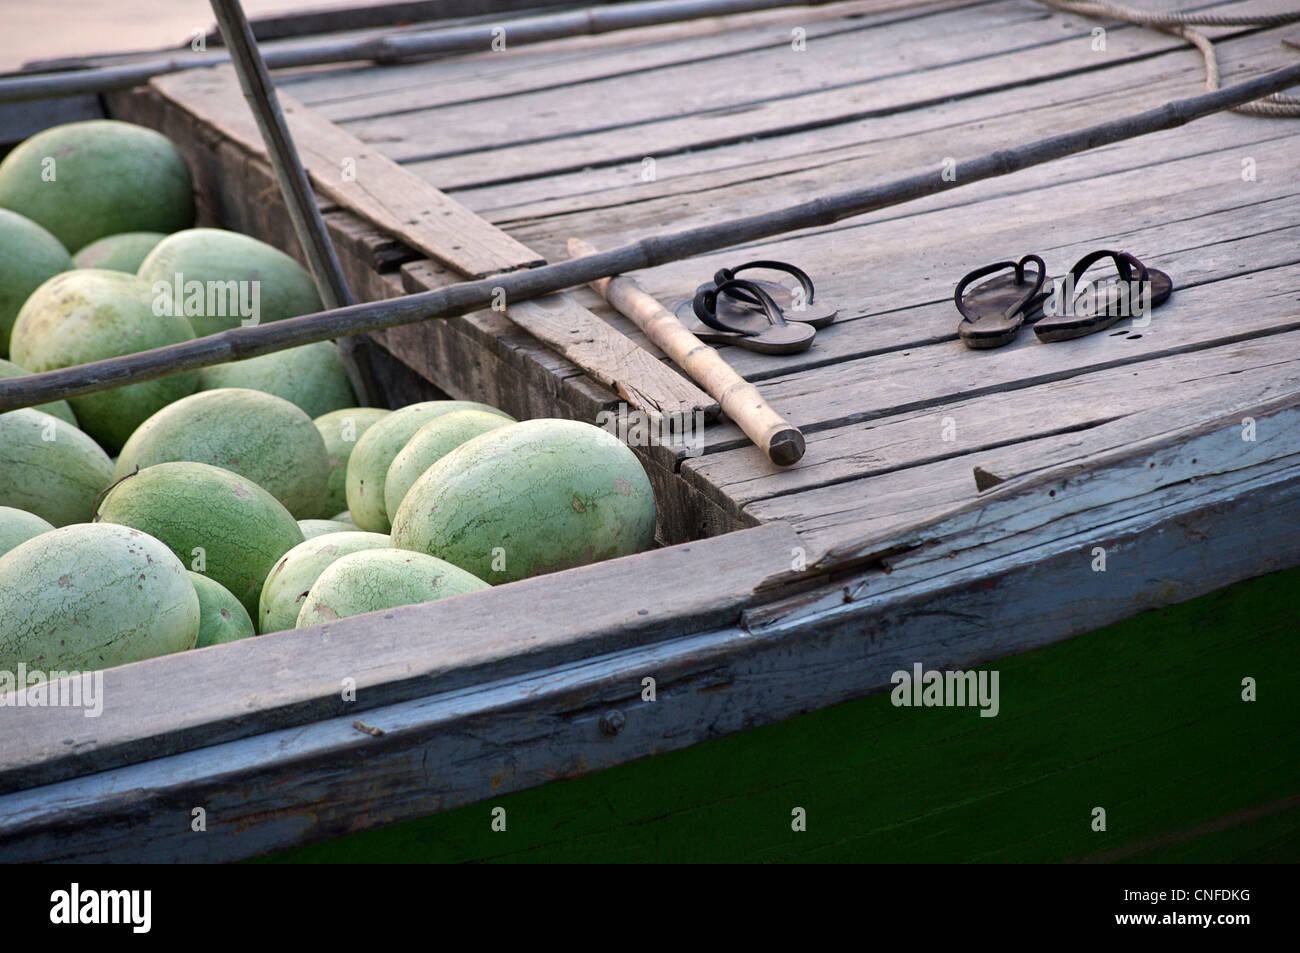 Detail of watermelons on a boat, Mandalay, Burma. Myanmar - Stock Image